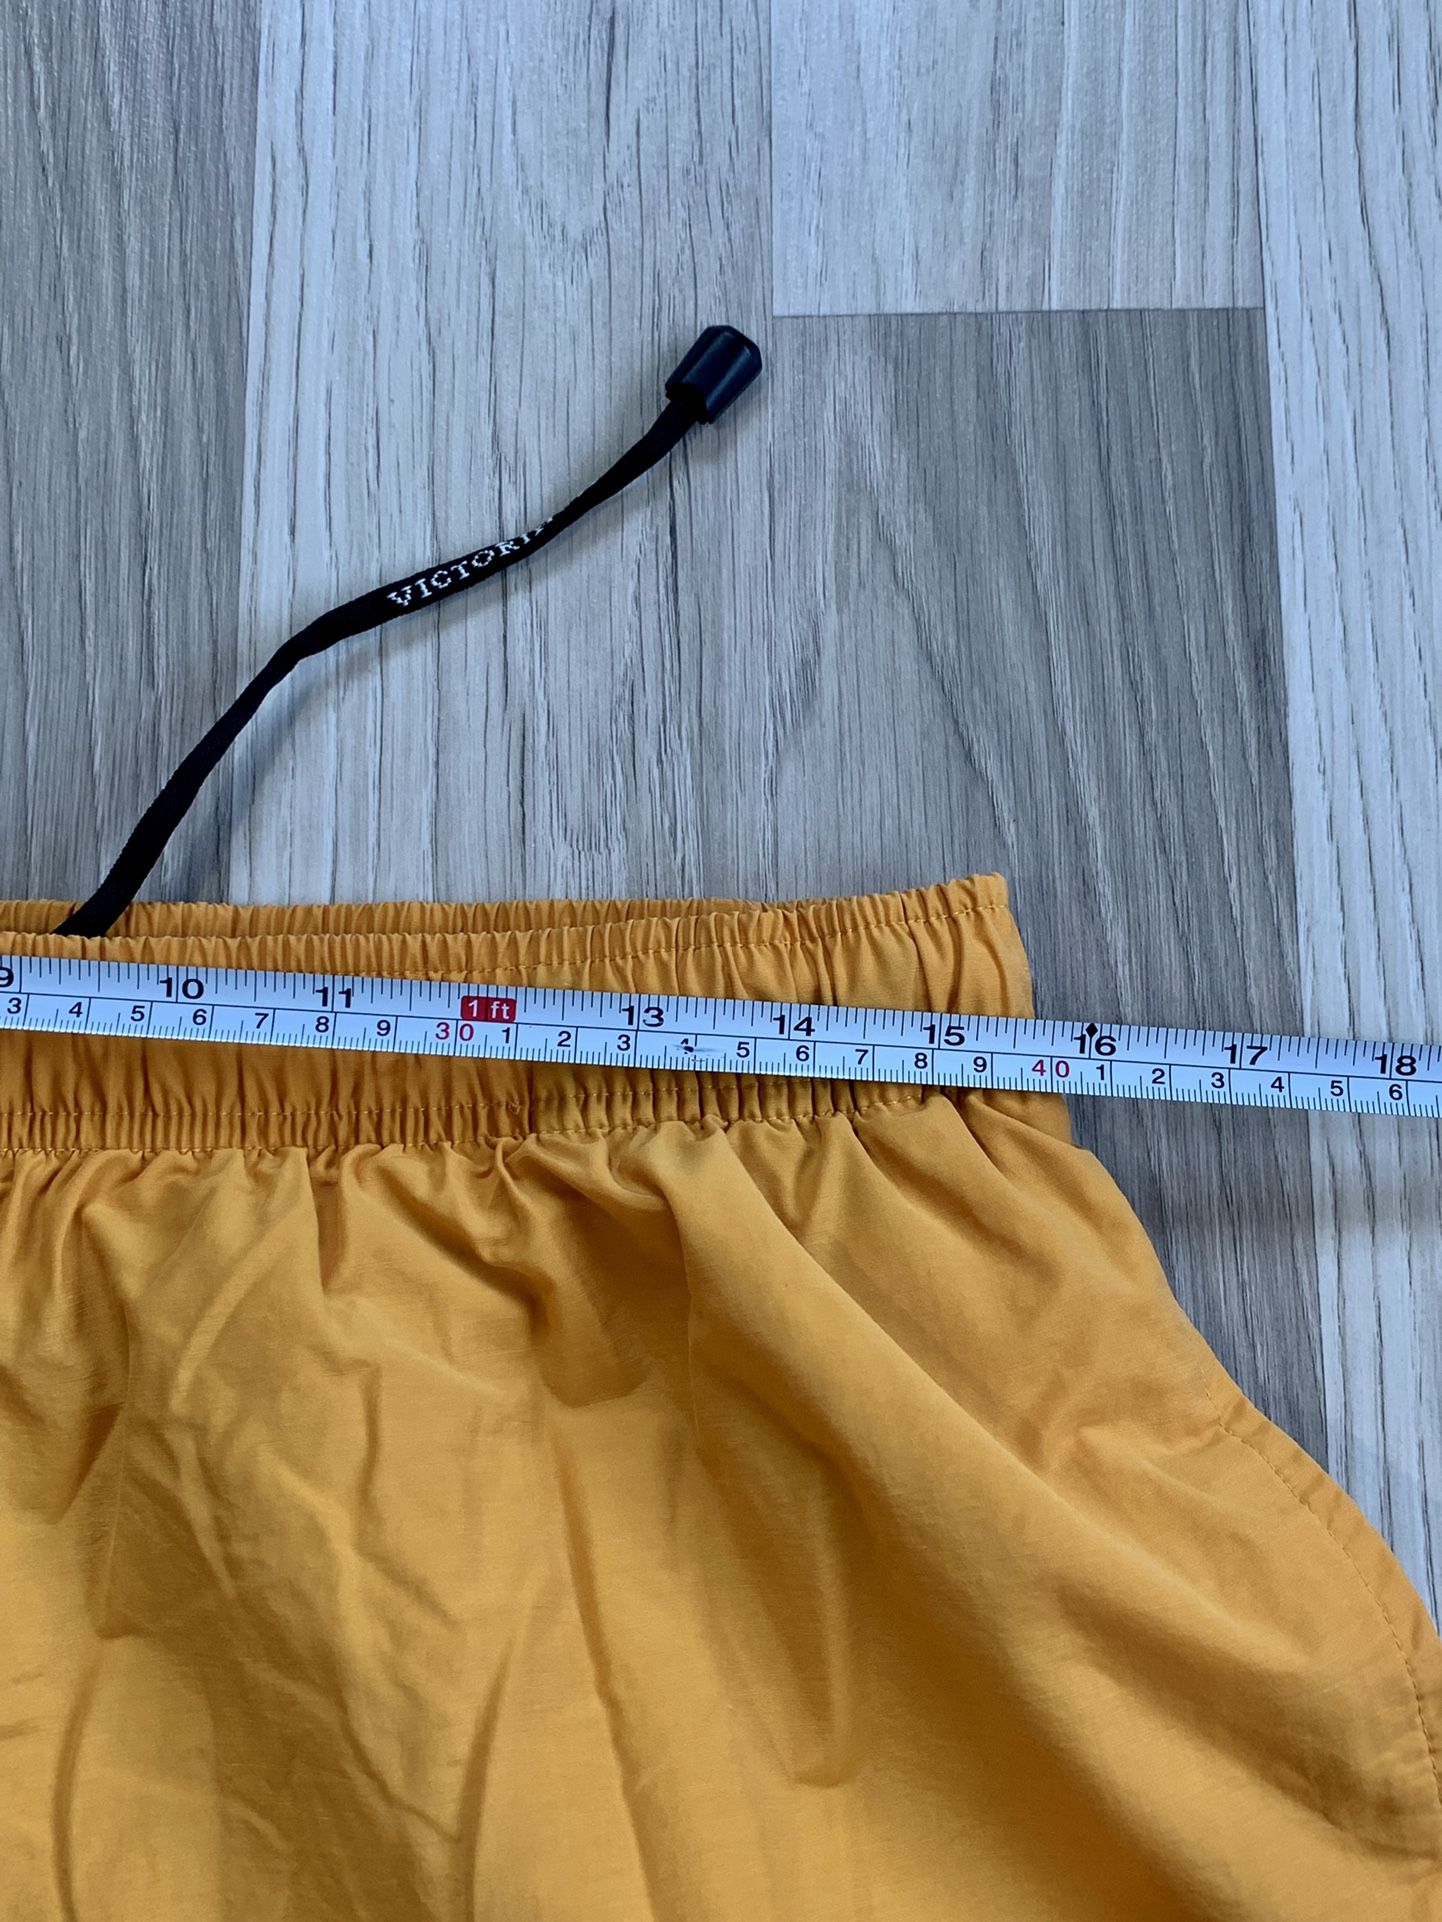 Victorinox Swiss Army Board Shorts Swim Trunks. Size Large. Good Condition, See All Pics